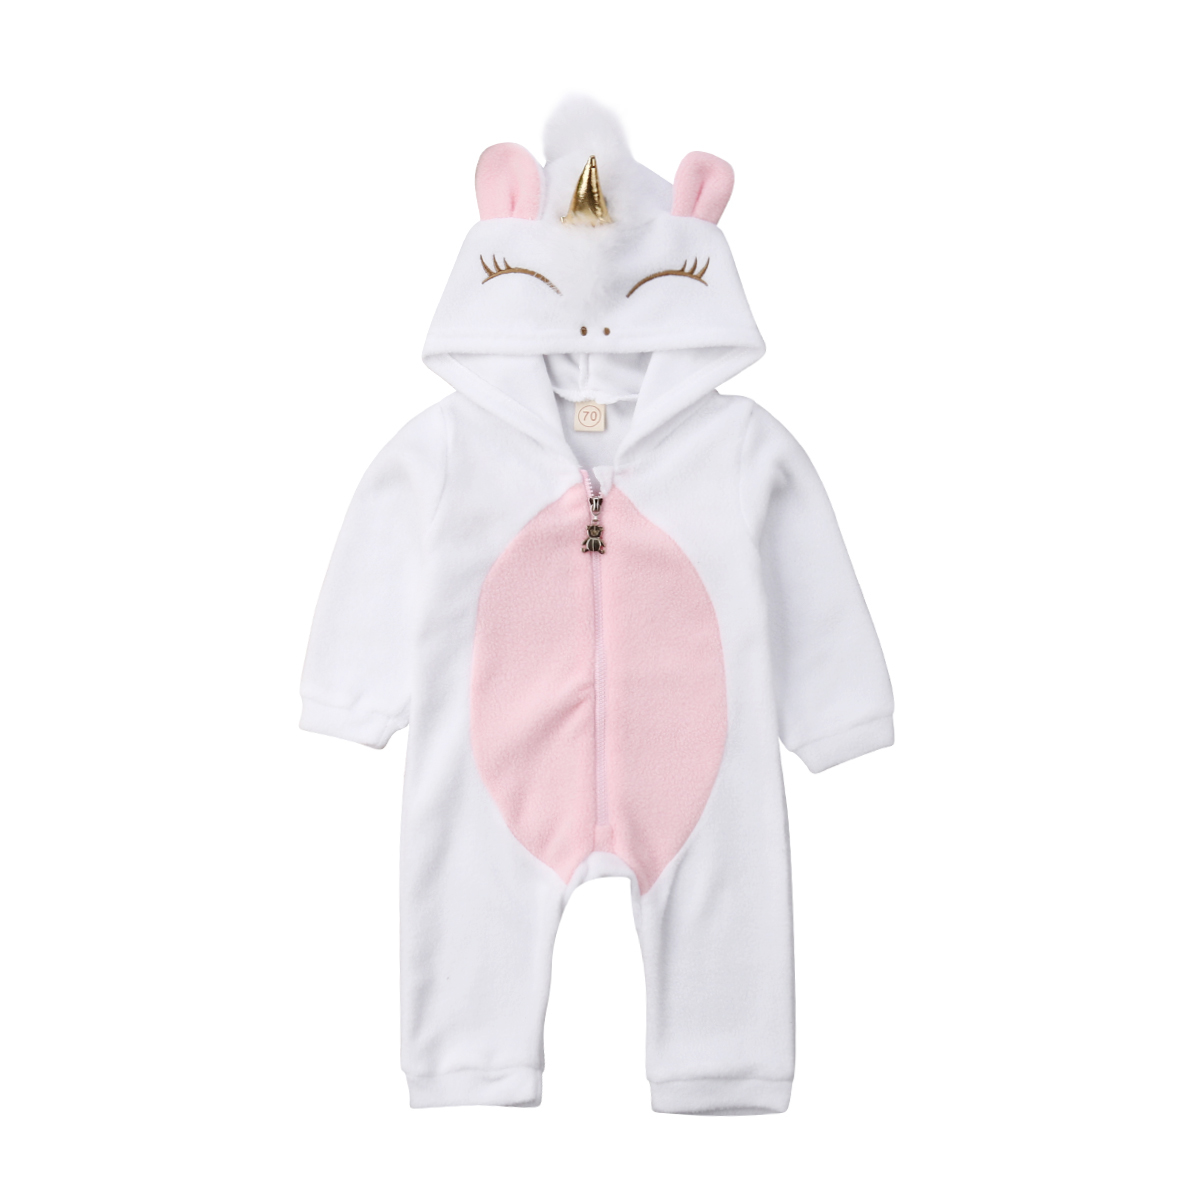 2019 Fashion Newborn Toddler Baby Girls 3D Unicorn Hooded Zipper   Romper   Jumpsuit Outfits Clothes Autumn Winter Warm Clothing